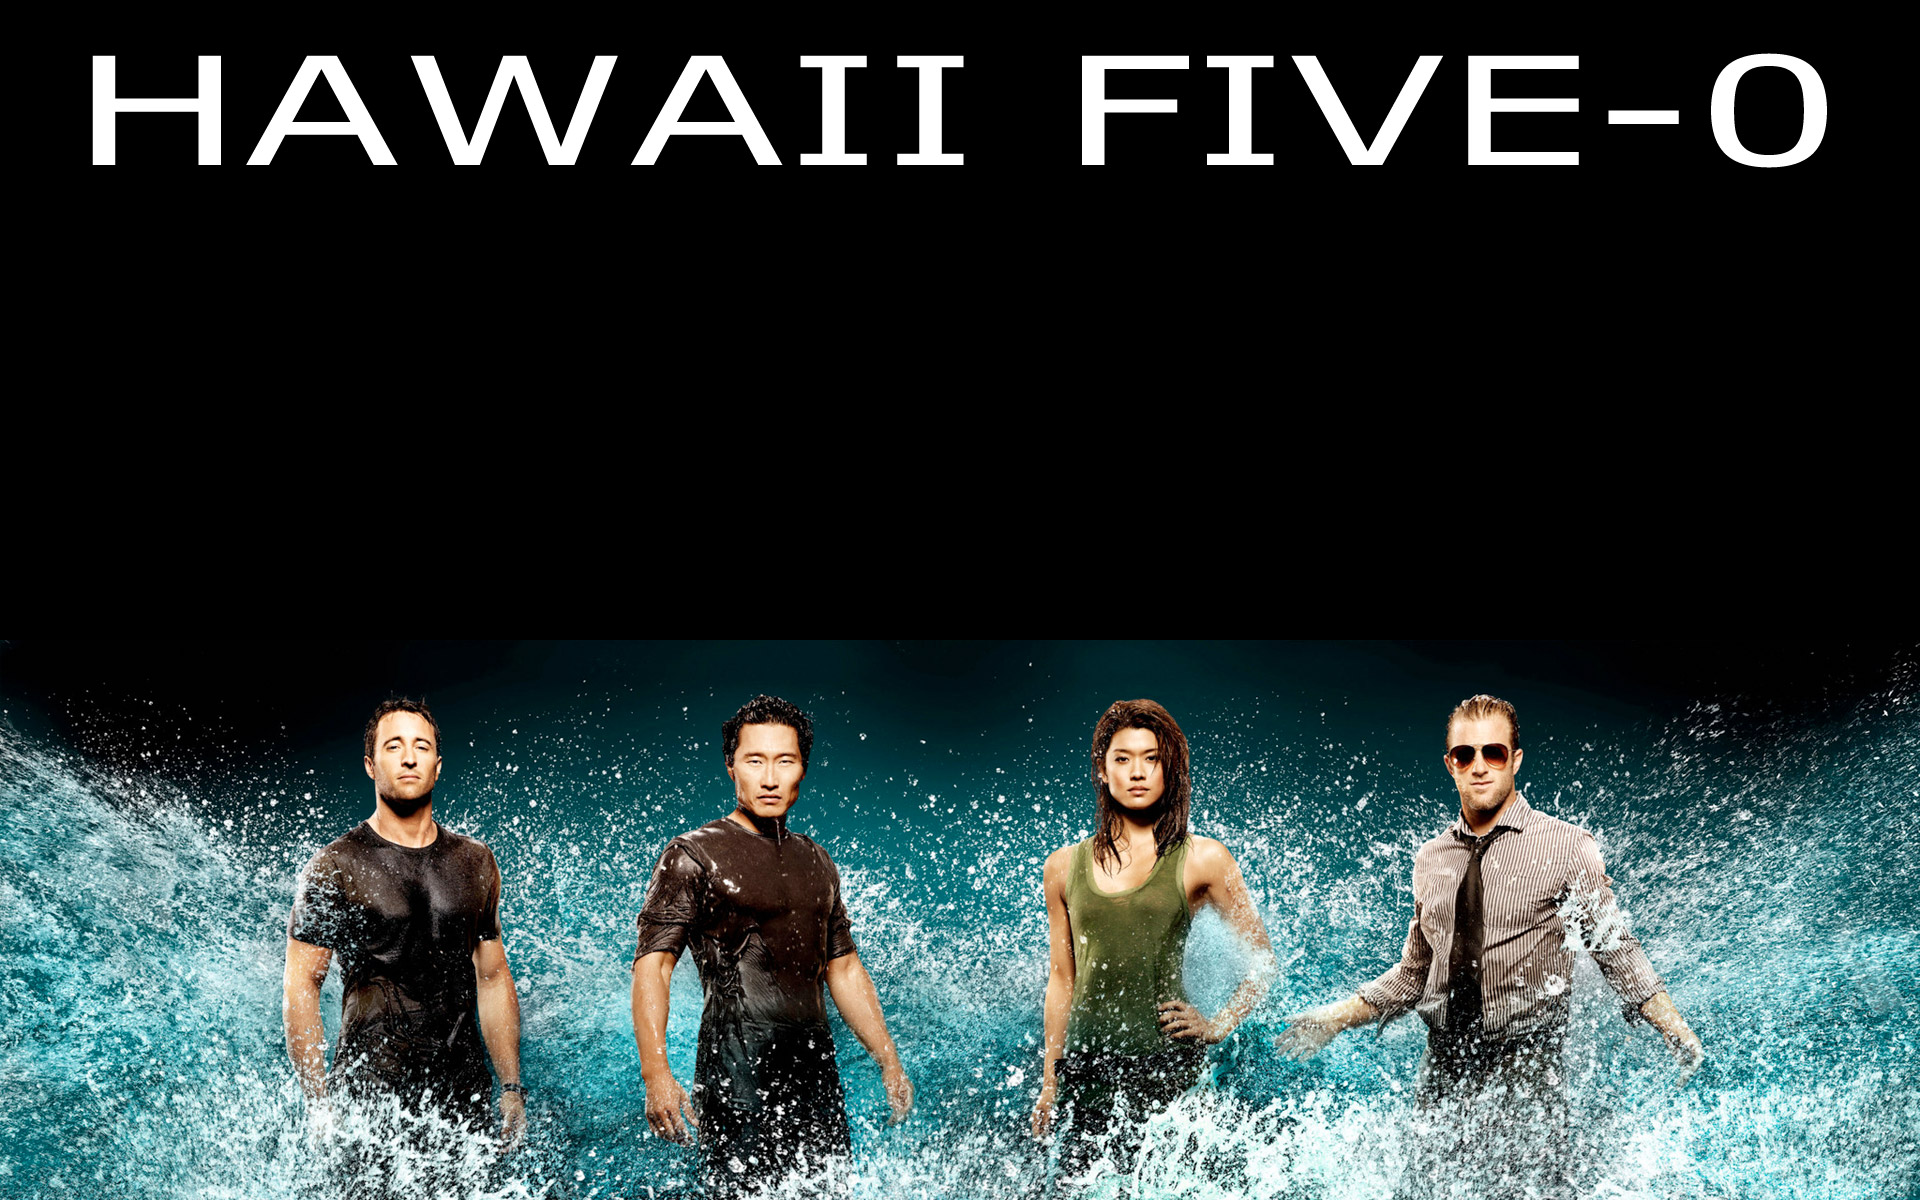 Hawaii five 0